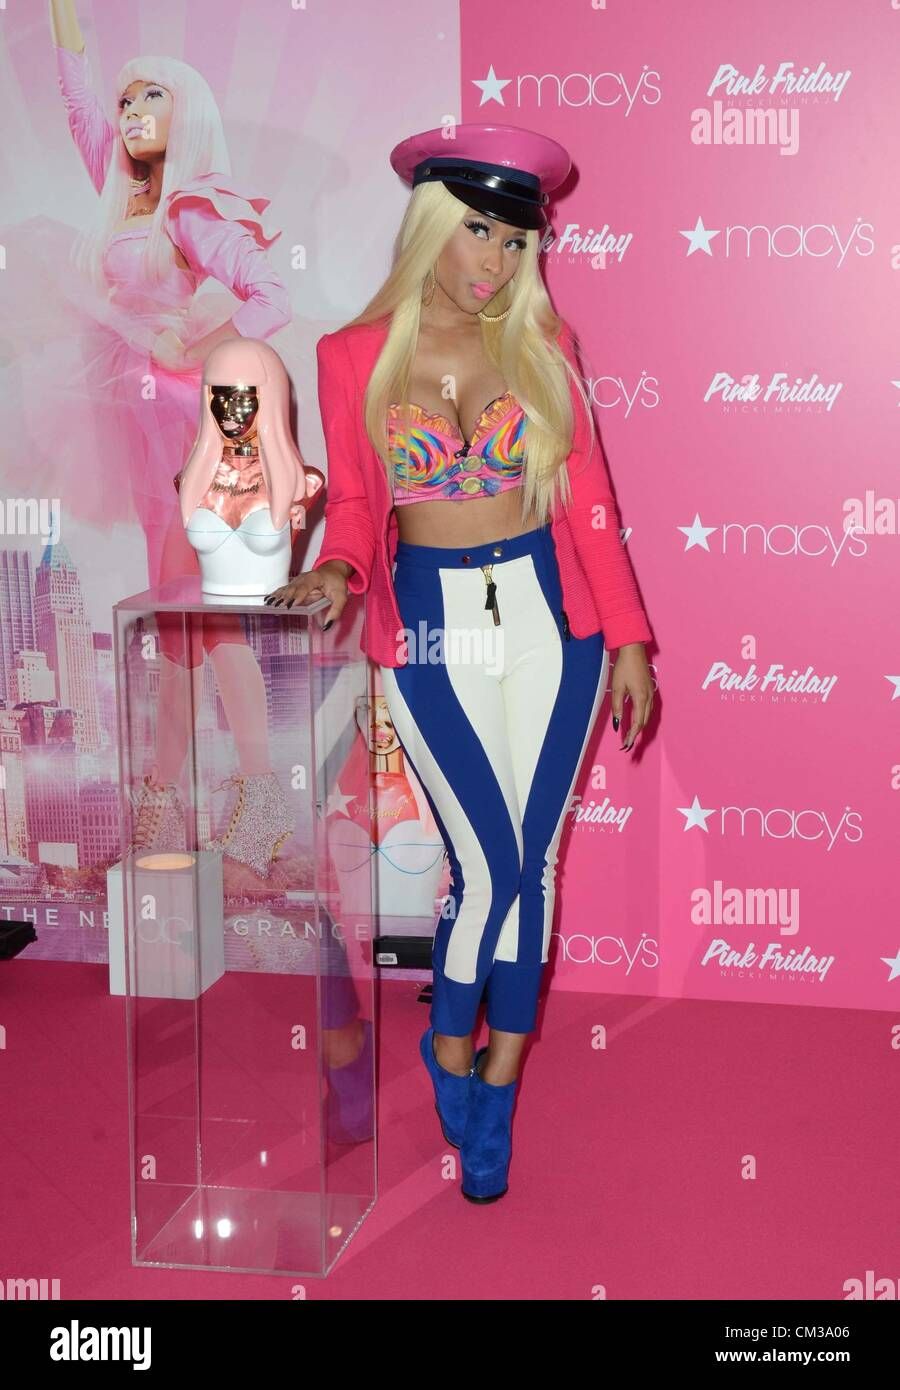 Nicki Minaj in-store appearance Nicky Minaj Launches Pink Friday Fragrance Macy's Herald Square Department Store - Stock Image